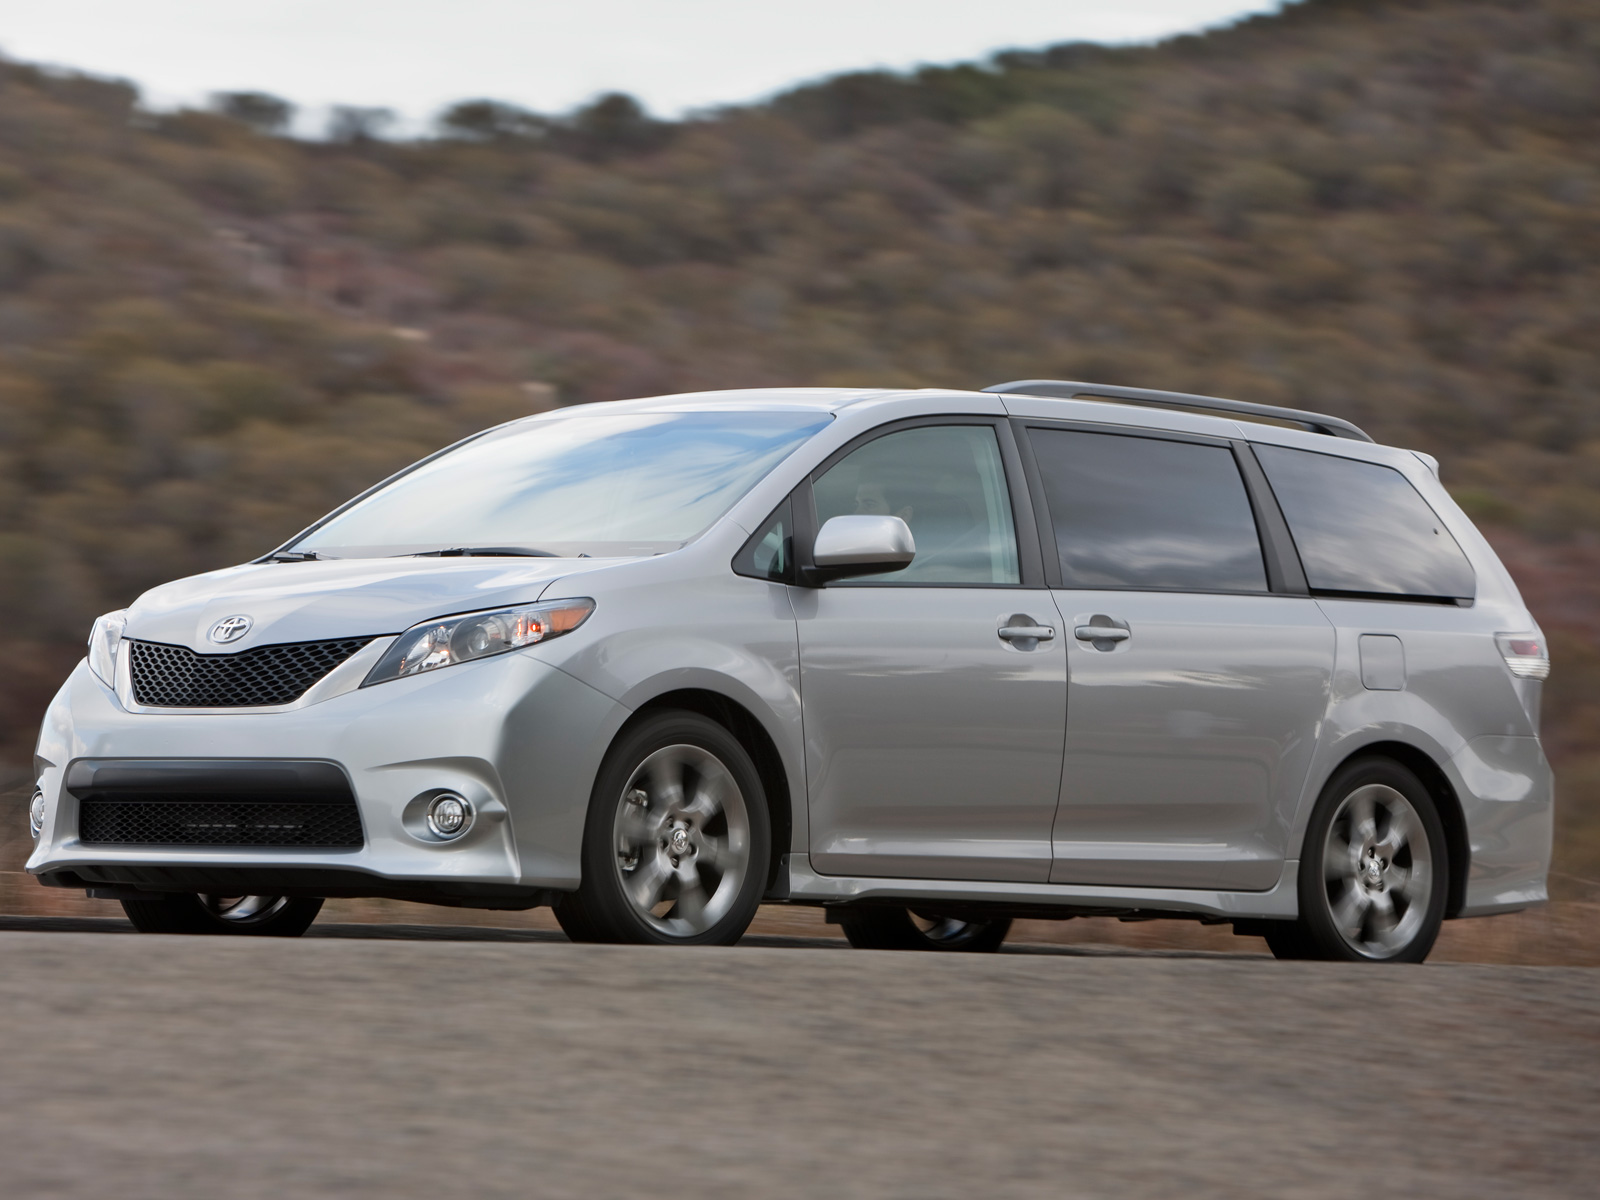 2011 toyota sienna toyota minivan review automobile magazine. Black Bedroom Furniture Sets. Home Design Ideas